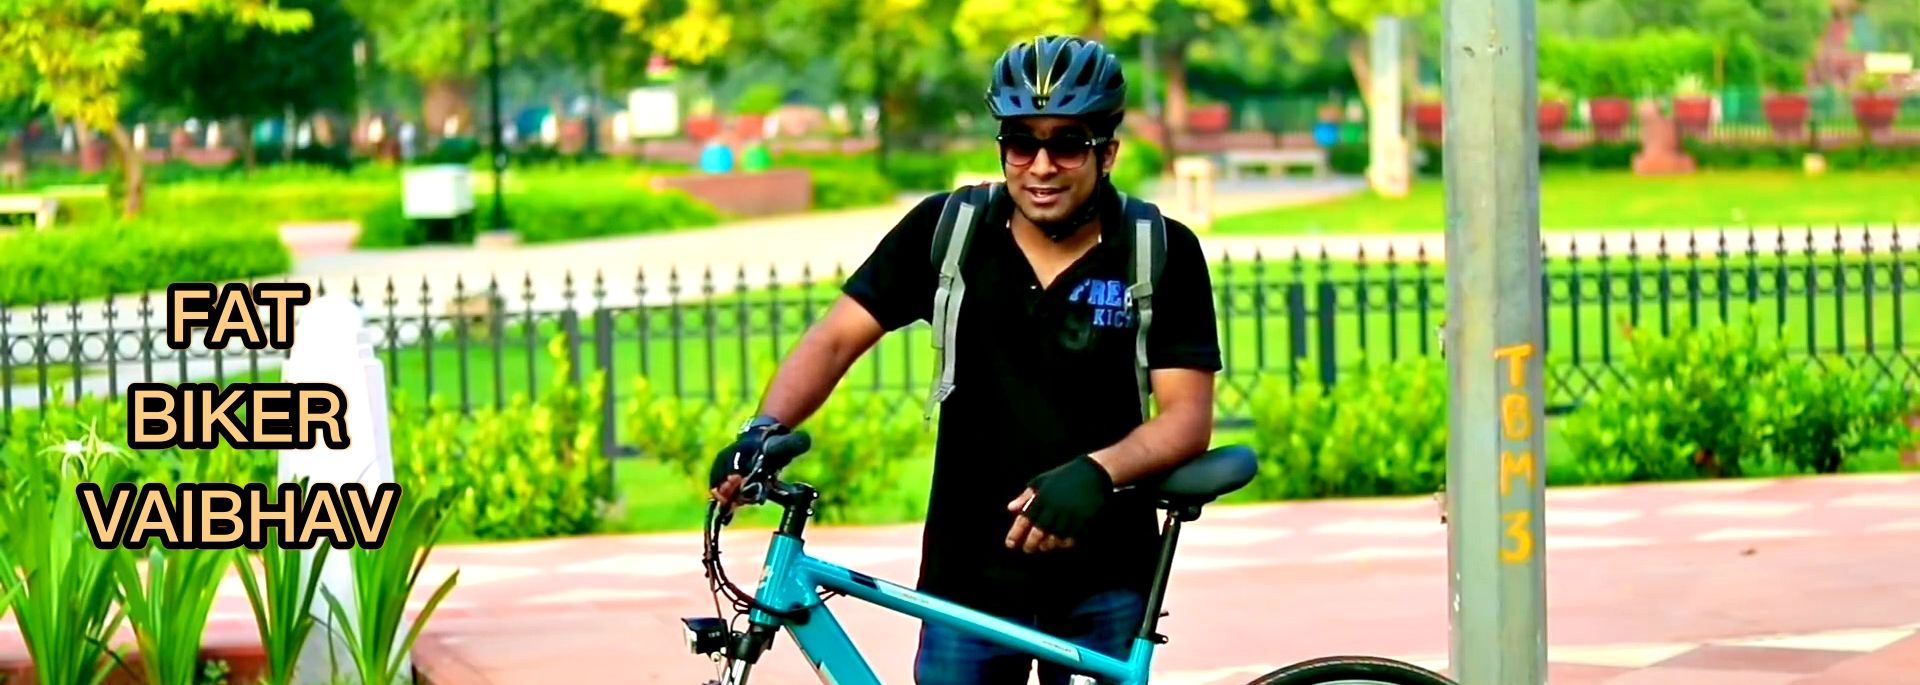 Fat Biker Vaibhav channel